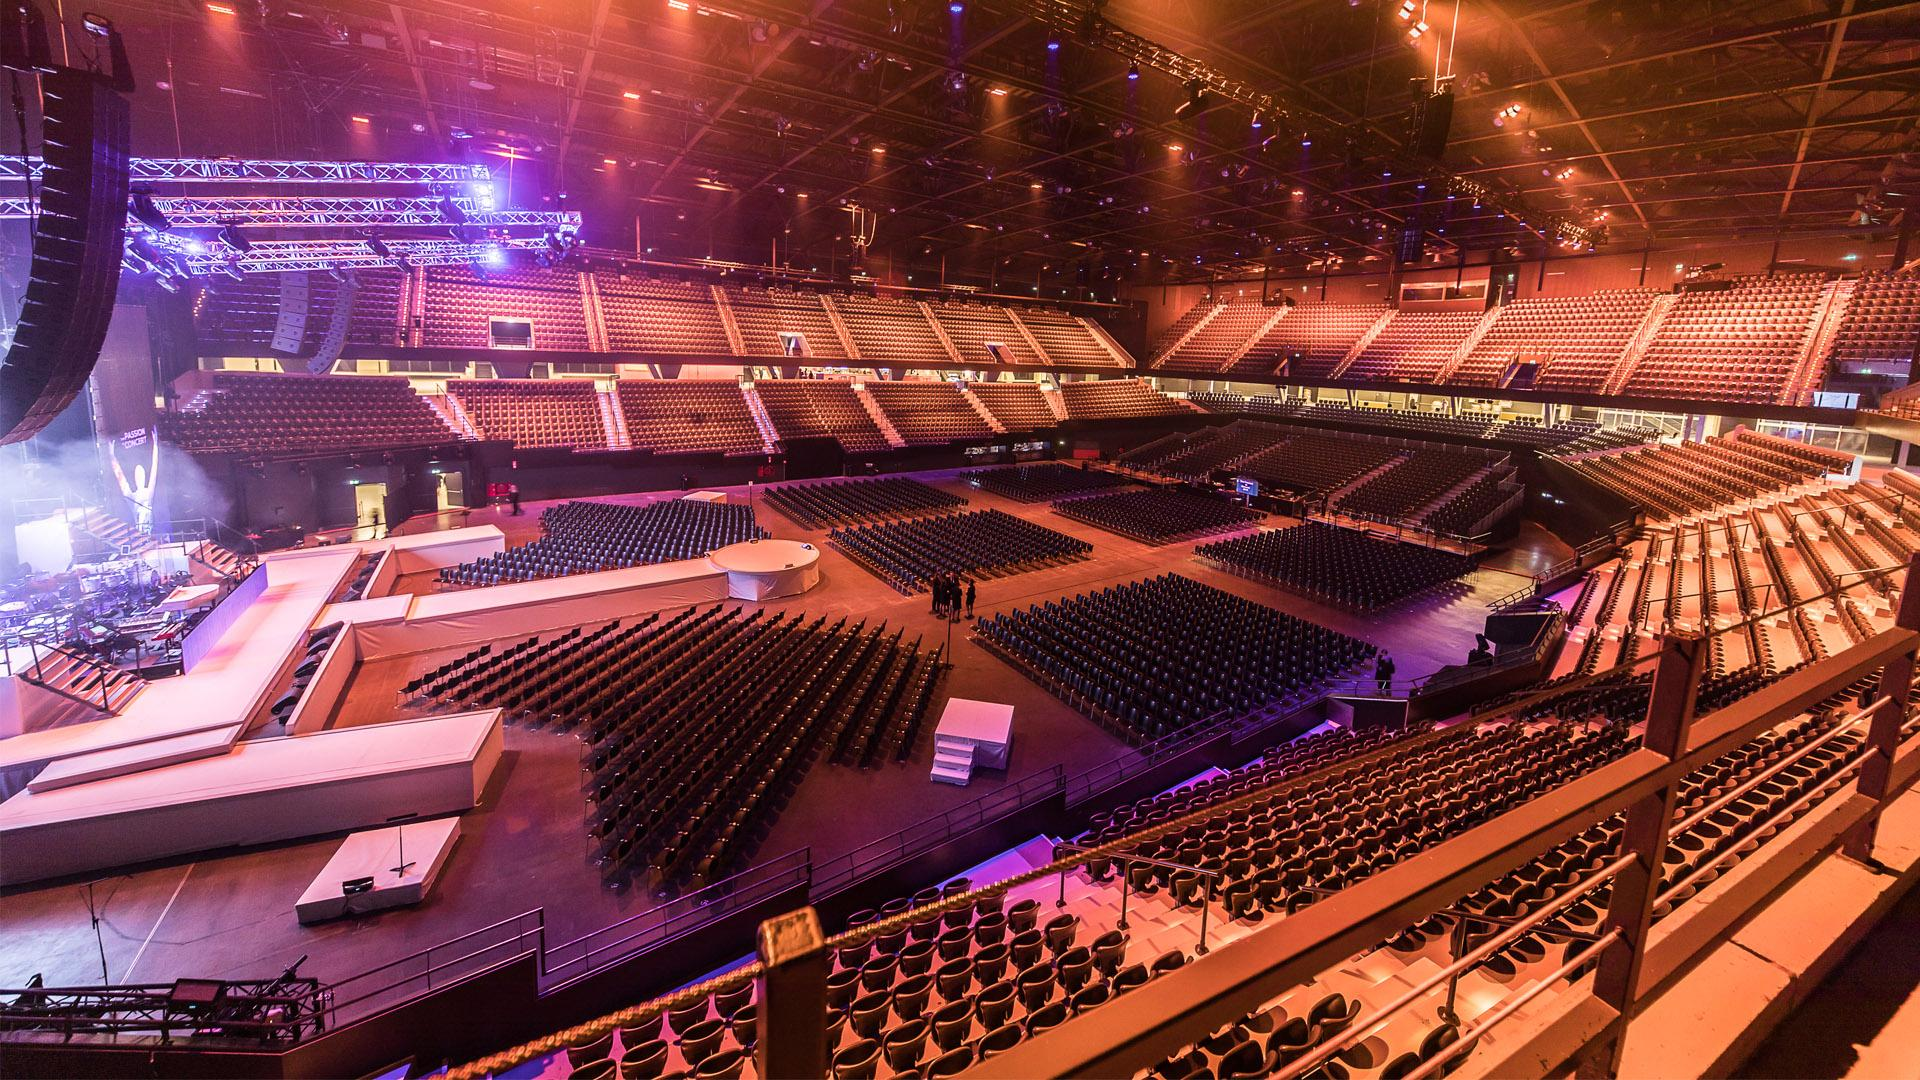 Rotterdam Ahoy: Events allowed to take place again at the Eurovision 2021 venue from July 1